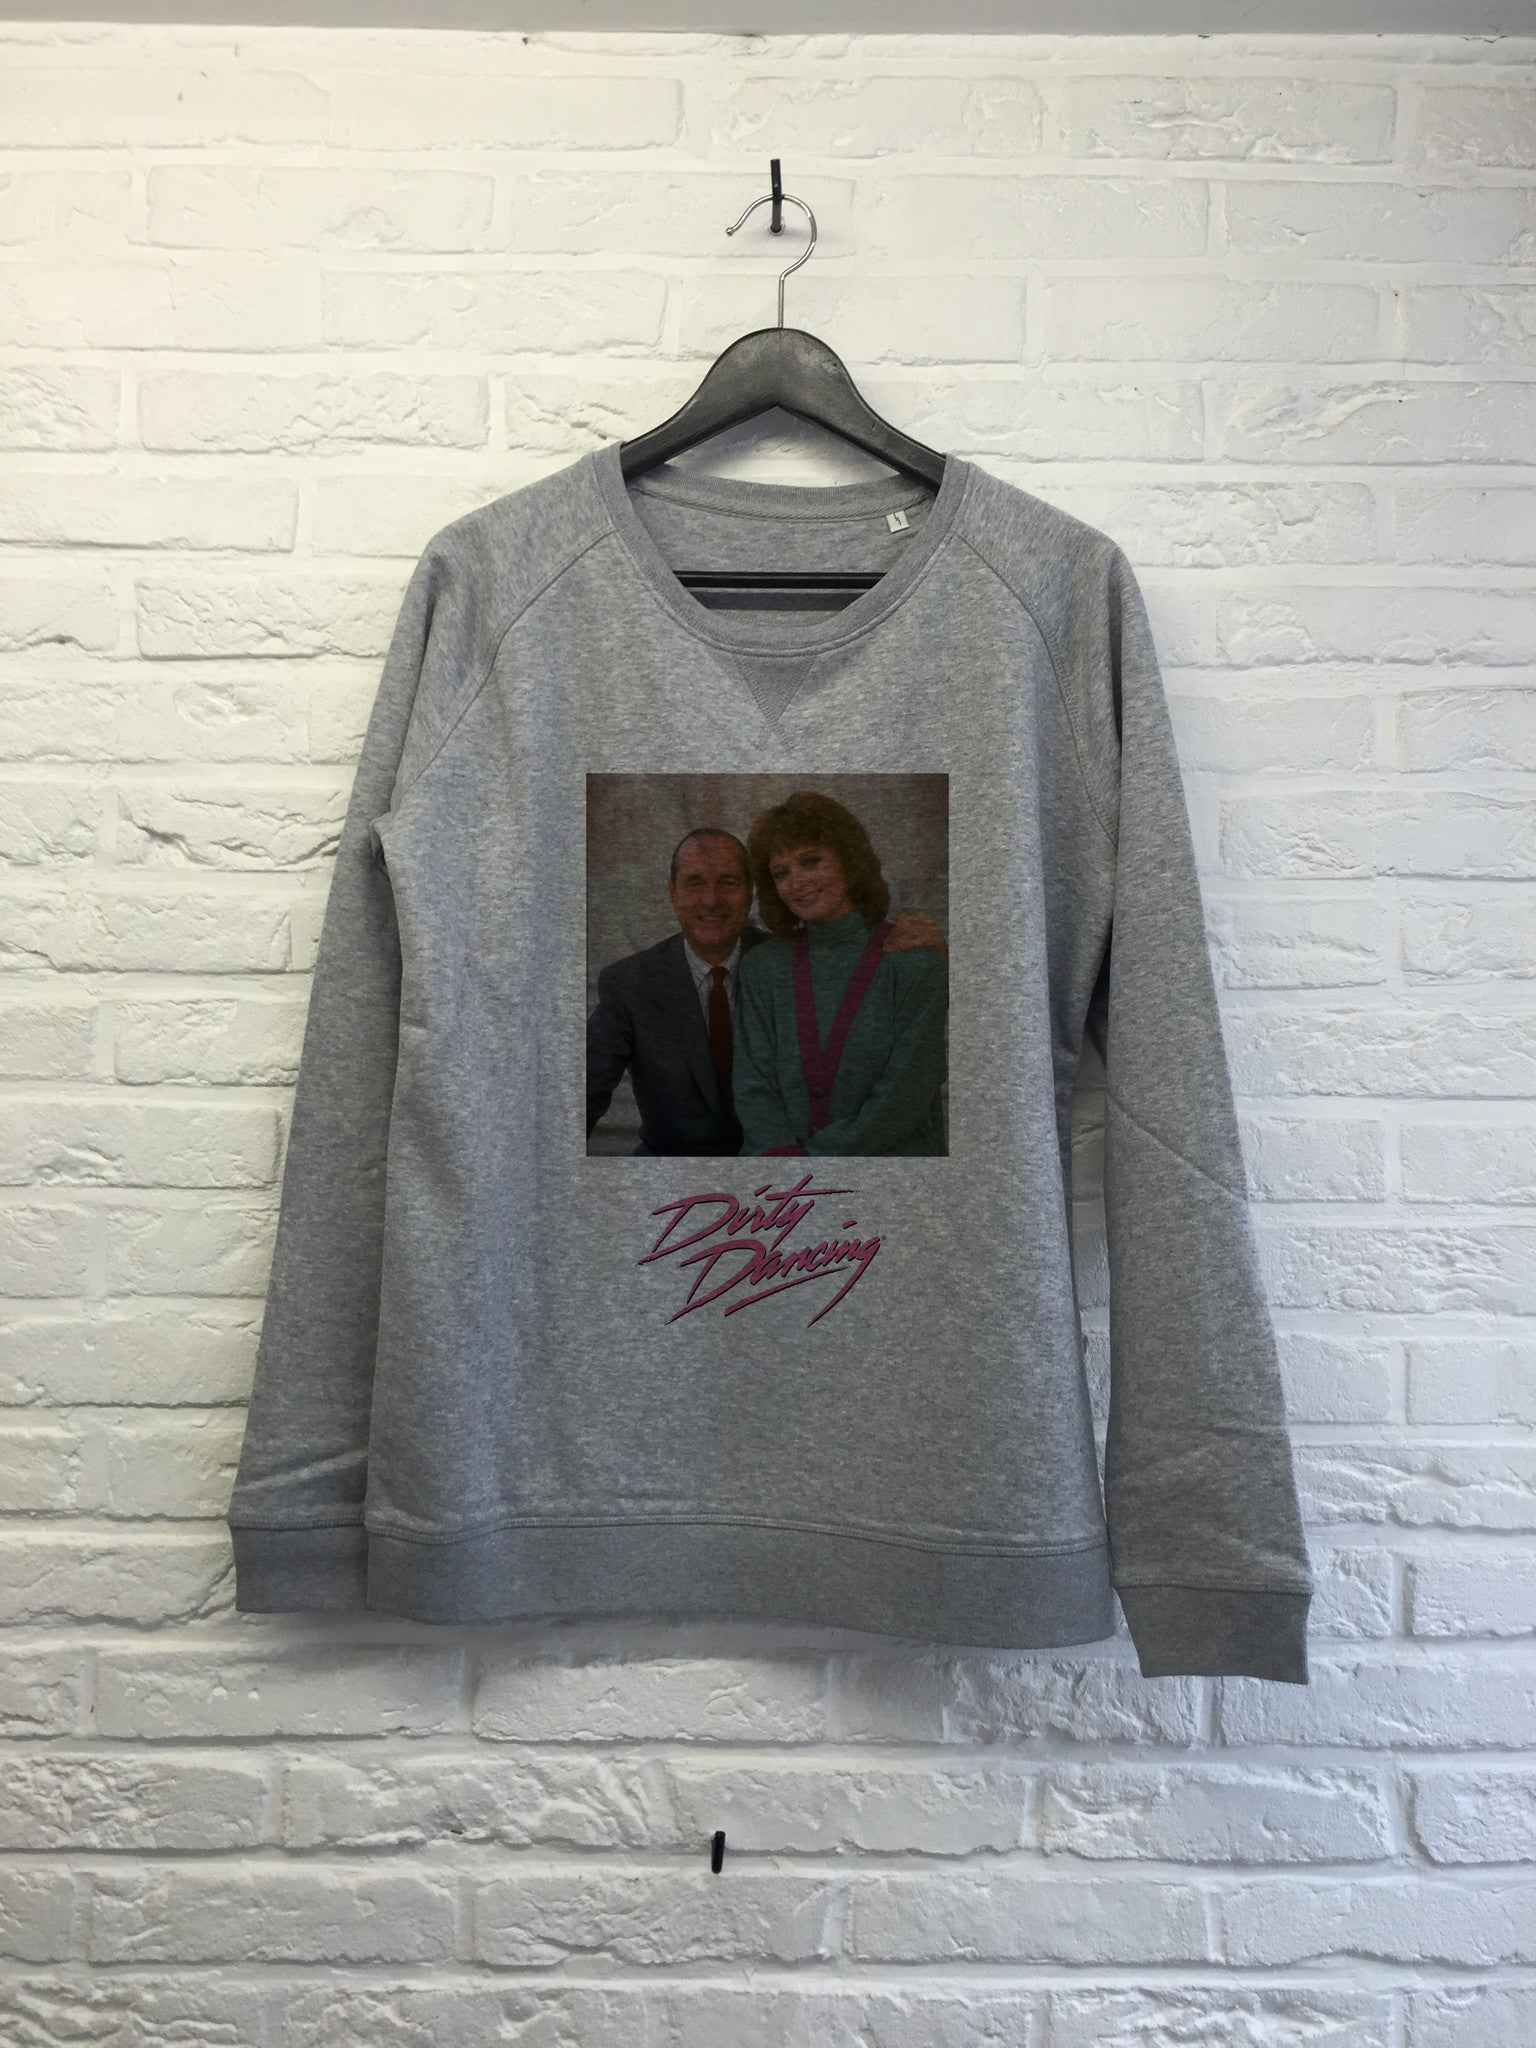 Chirac Dirty Dancing - Sweat - Femme-Sweat shirts-Atelier Amelot